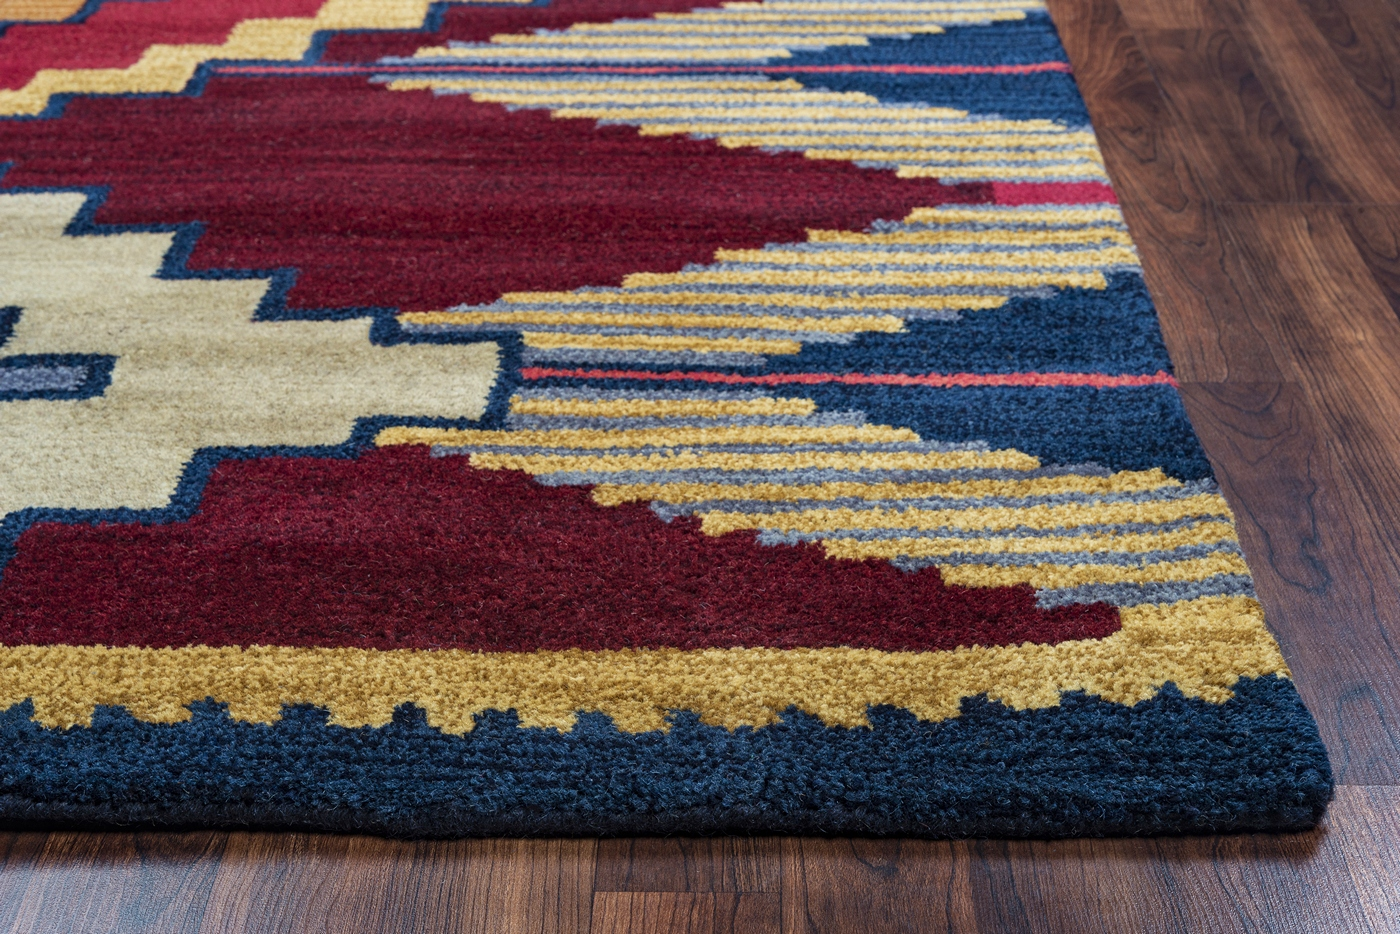 Southwest Aztec Zigzag Wool Area Rug In Blue Navy Red Gold 8 x 10